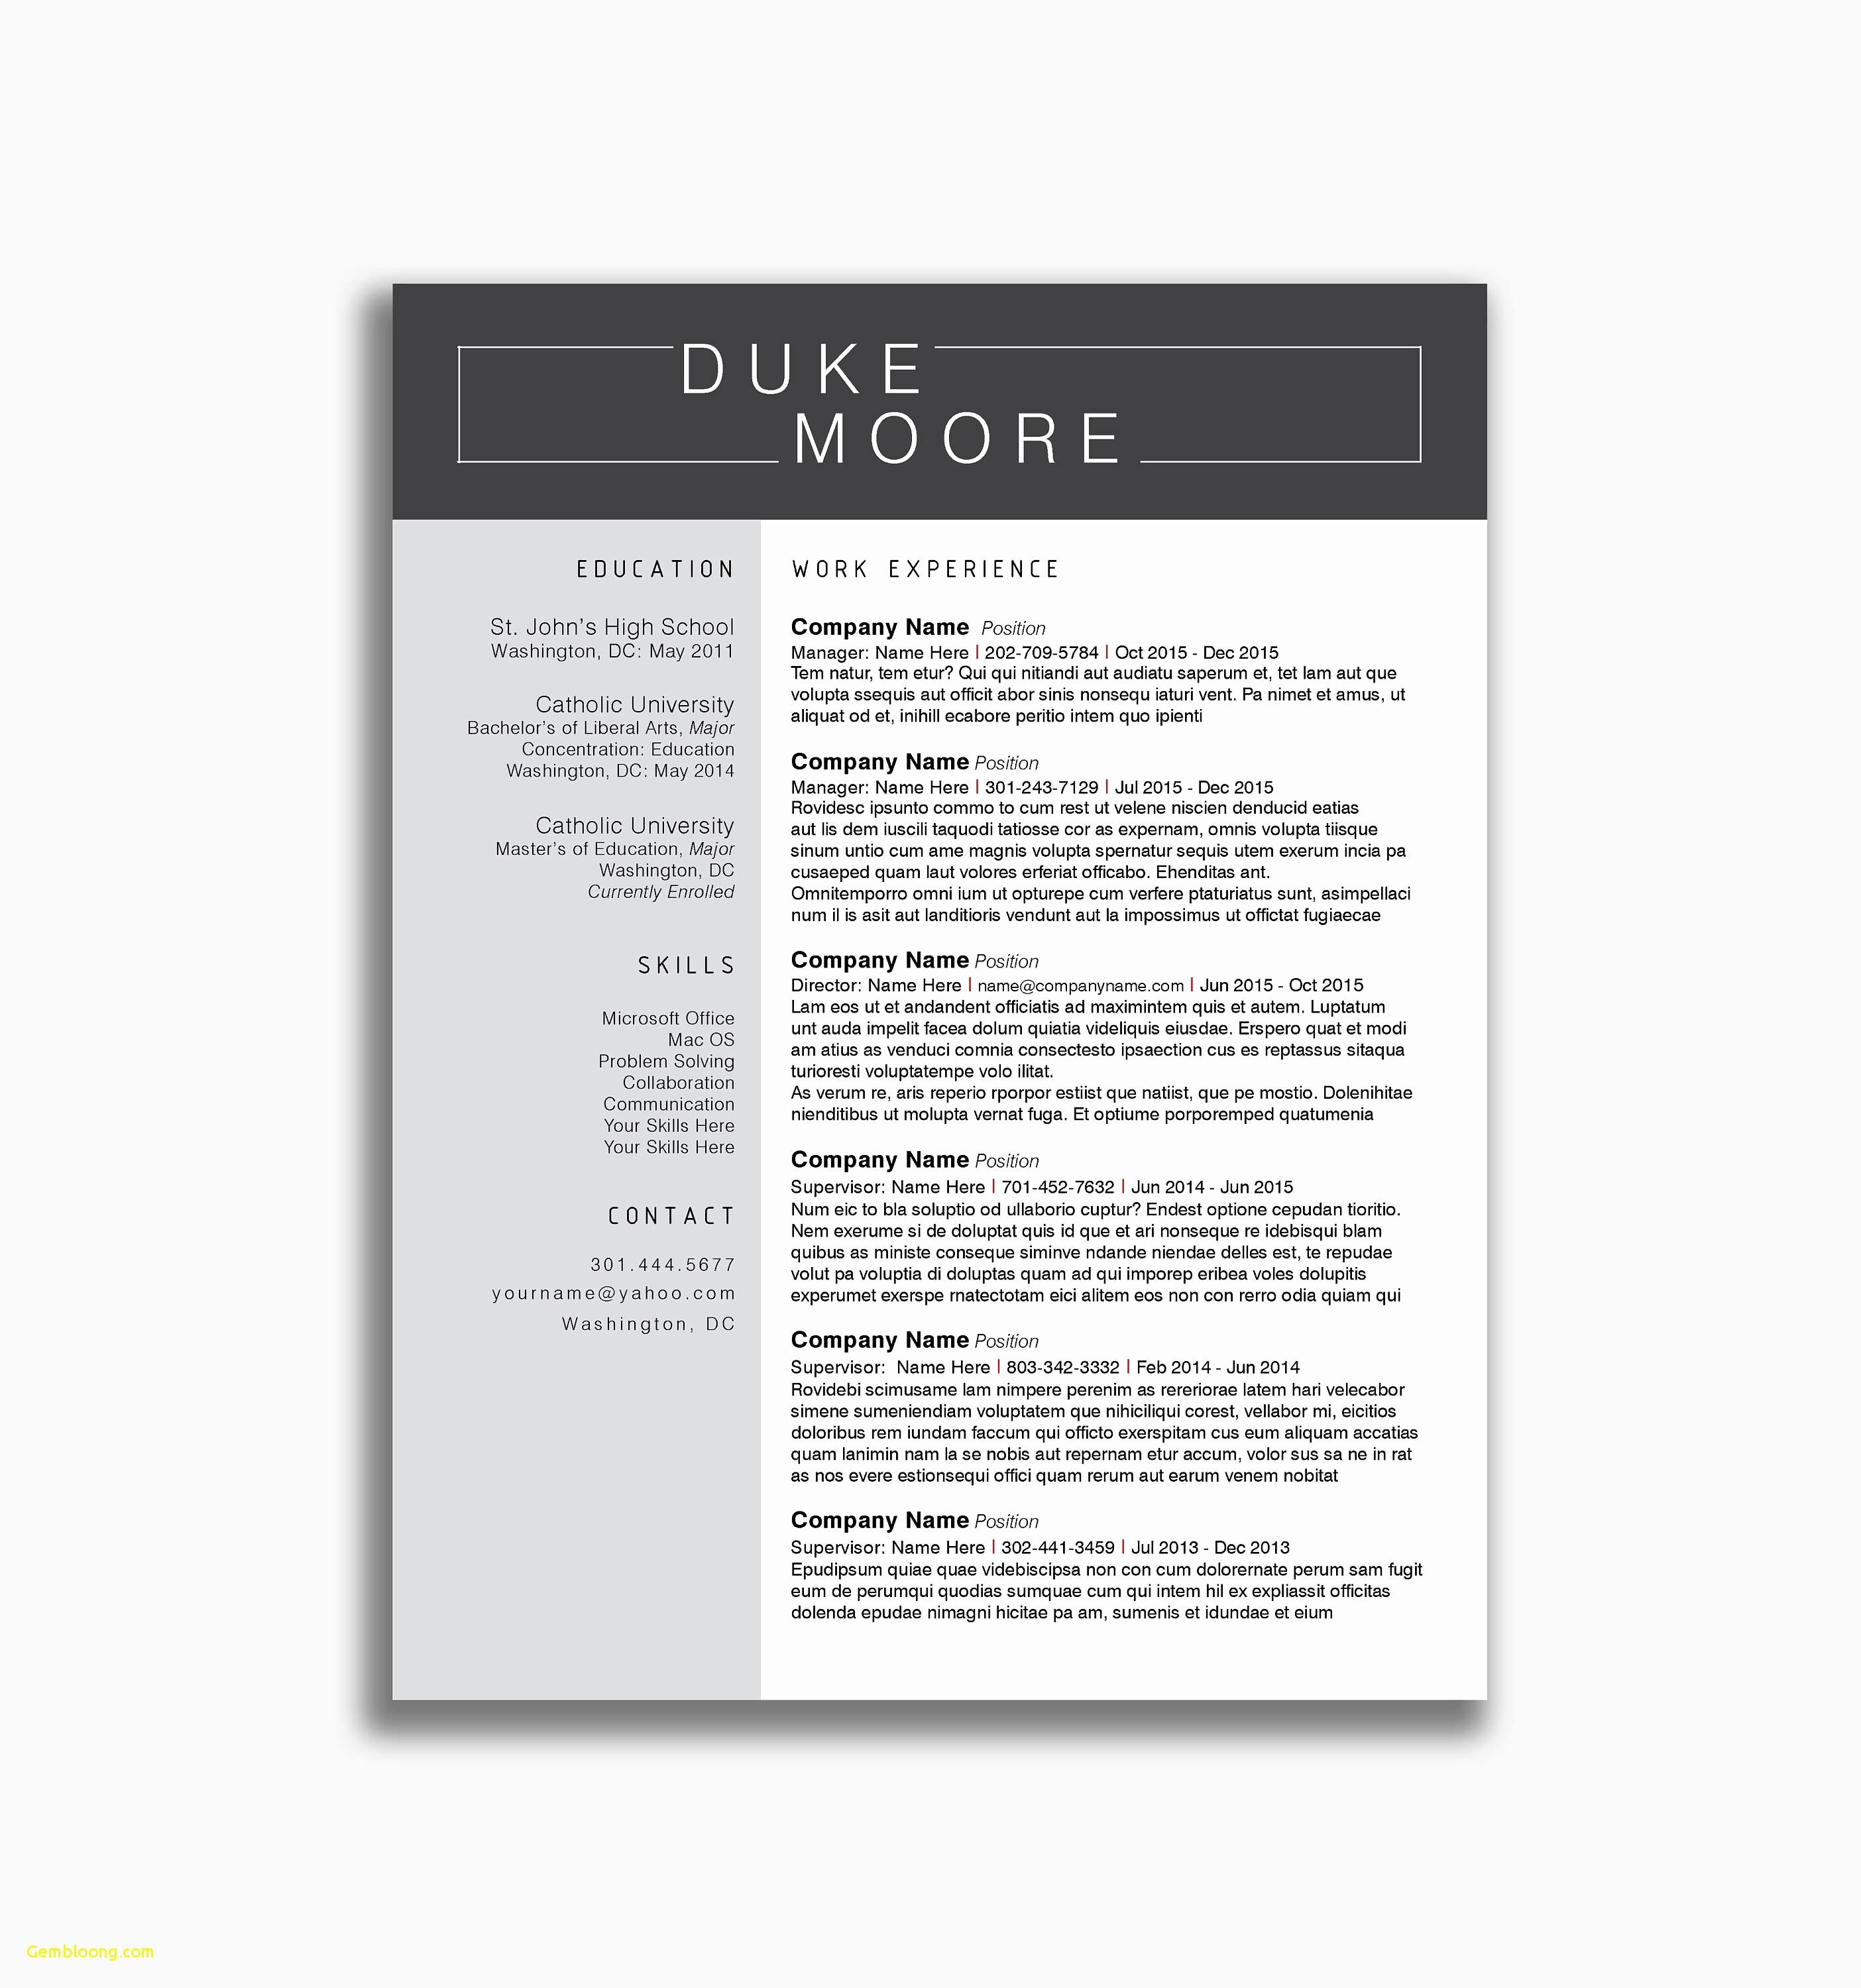 duke resume template example-Download Resume Template Beautiful Law Student Resume Template Best Resume Examples 0d 13-l